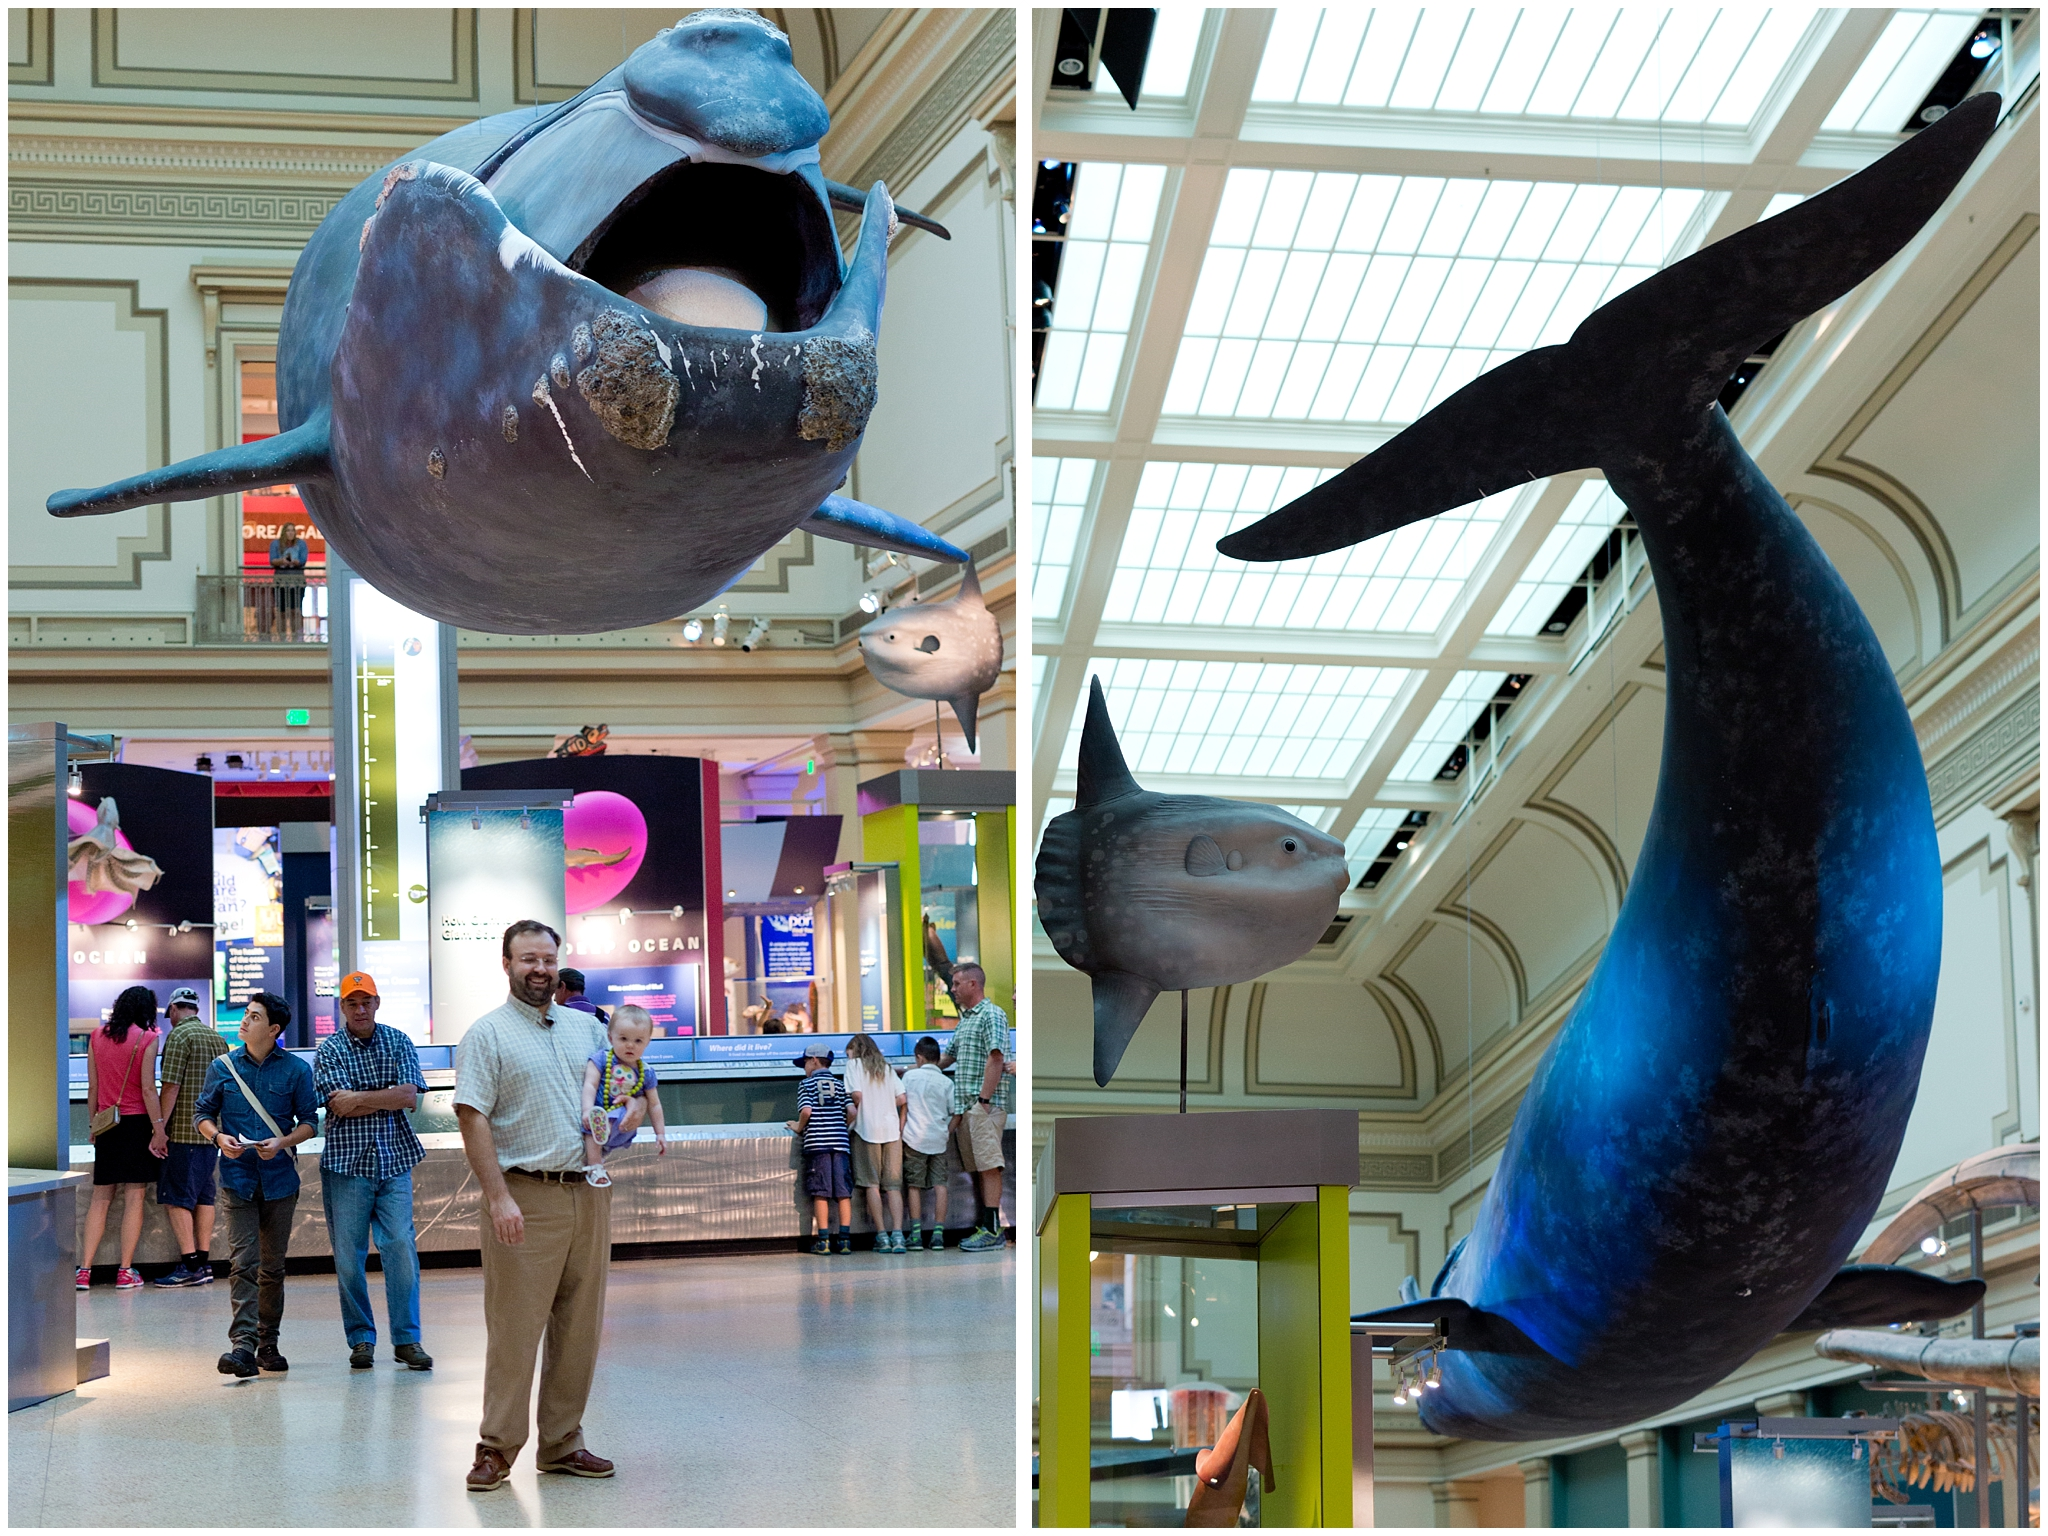 Smithsonian Museum of Natural History Oceans Hall (whale)